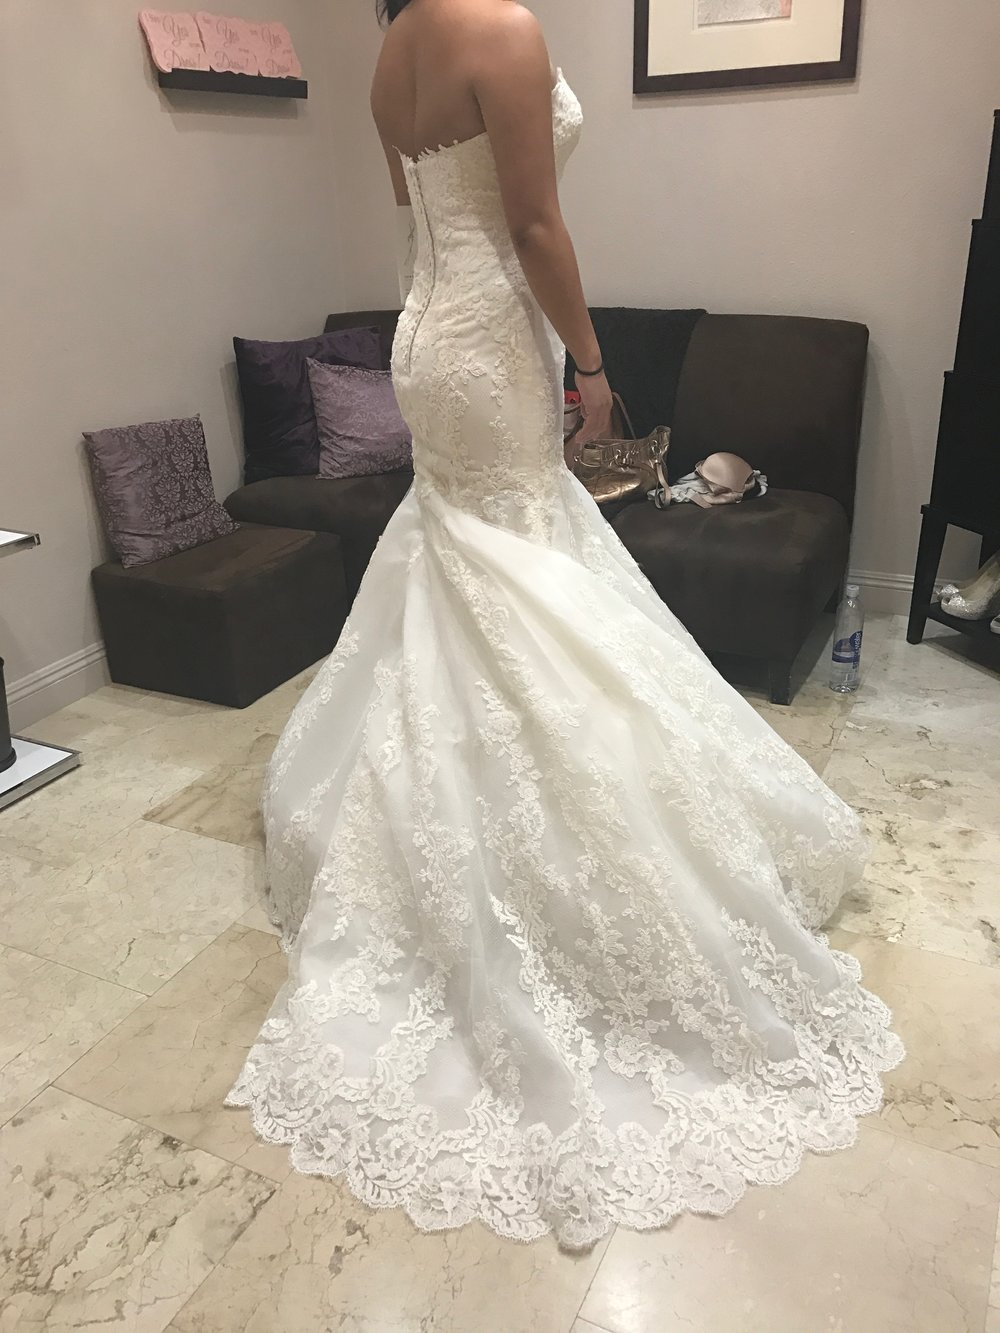 $1000 Enzoani Wedding Gown - Ivory - Size 8 - Dry cleaned and ready for youAltered with sweetheart neckline and bra cupsUsed once, absolutely LOVED it :)RETAIL: $3000